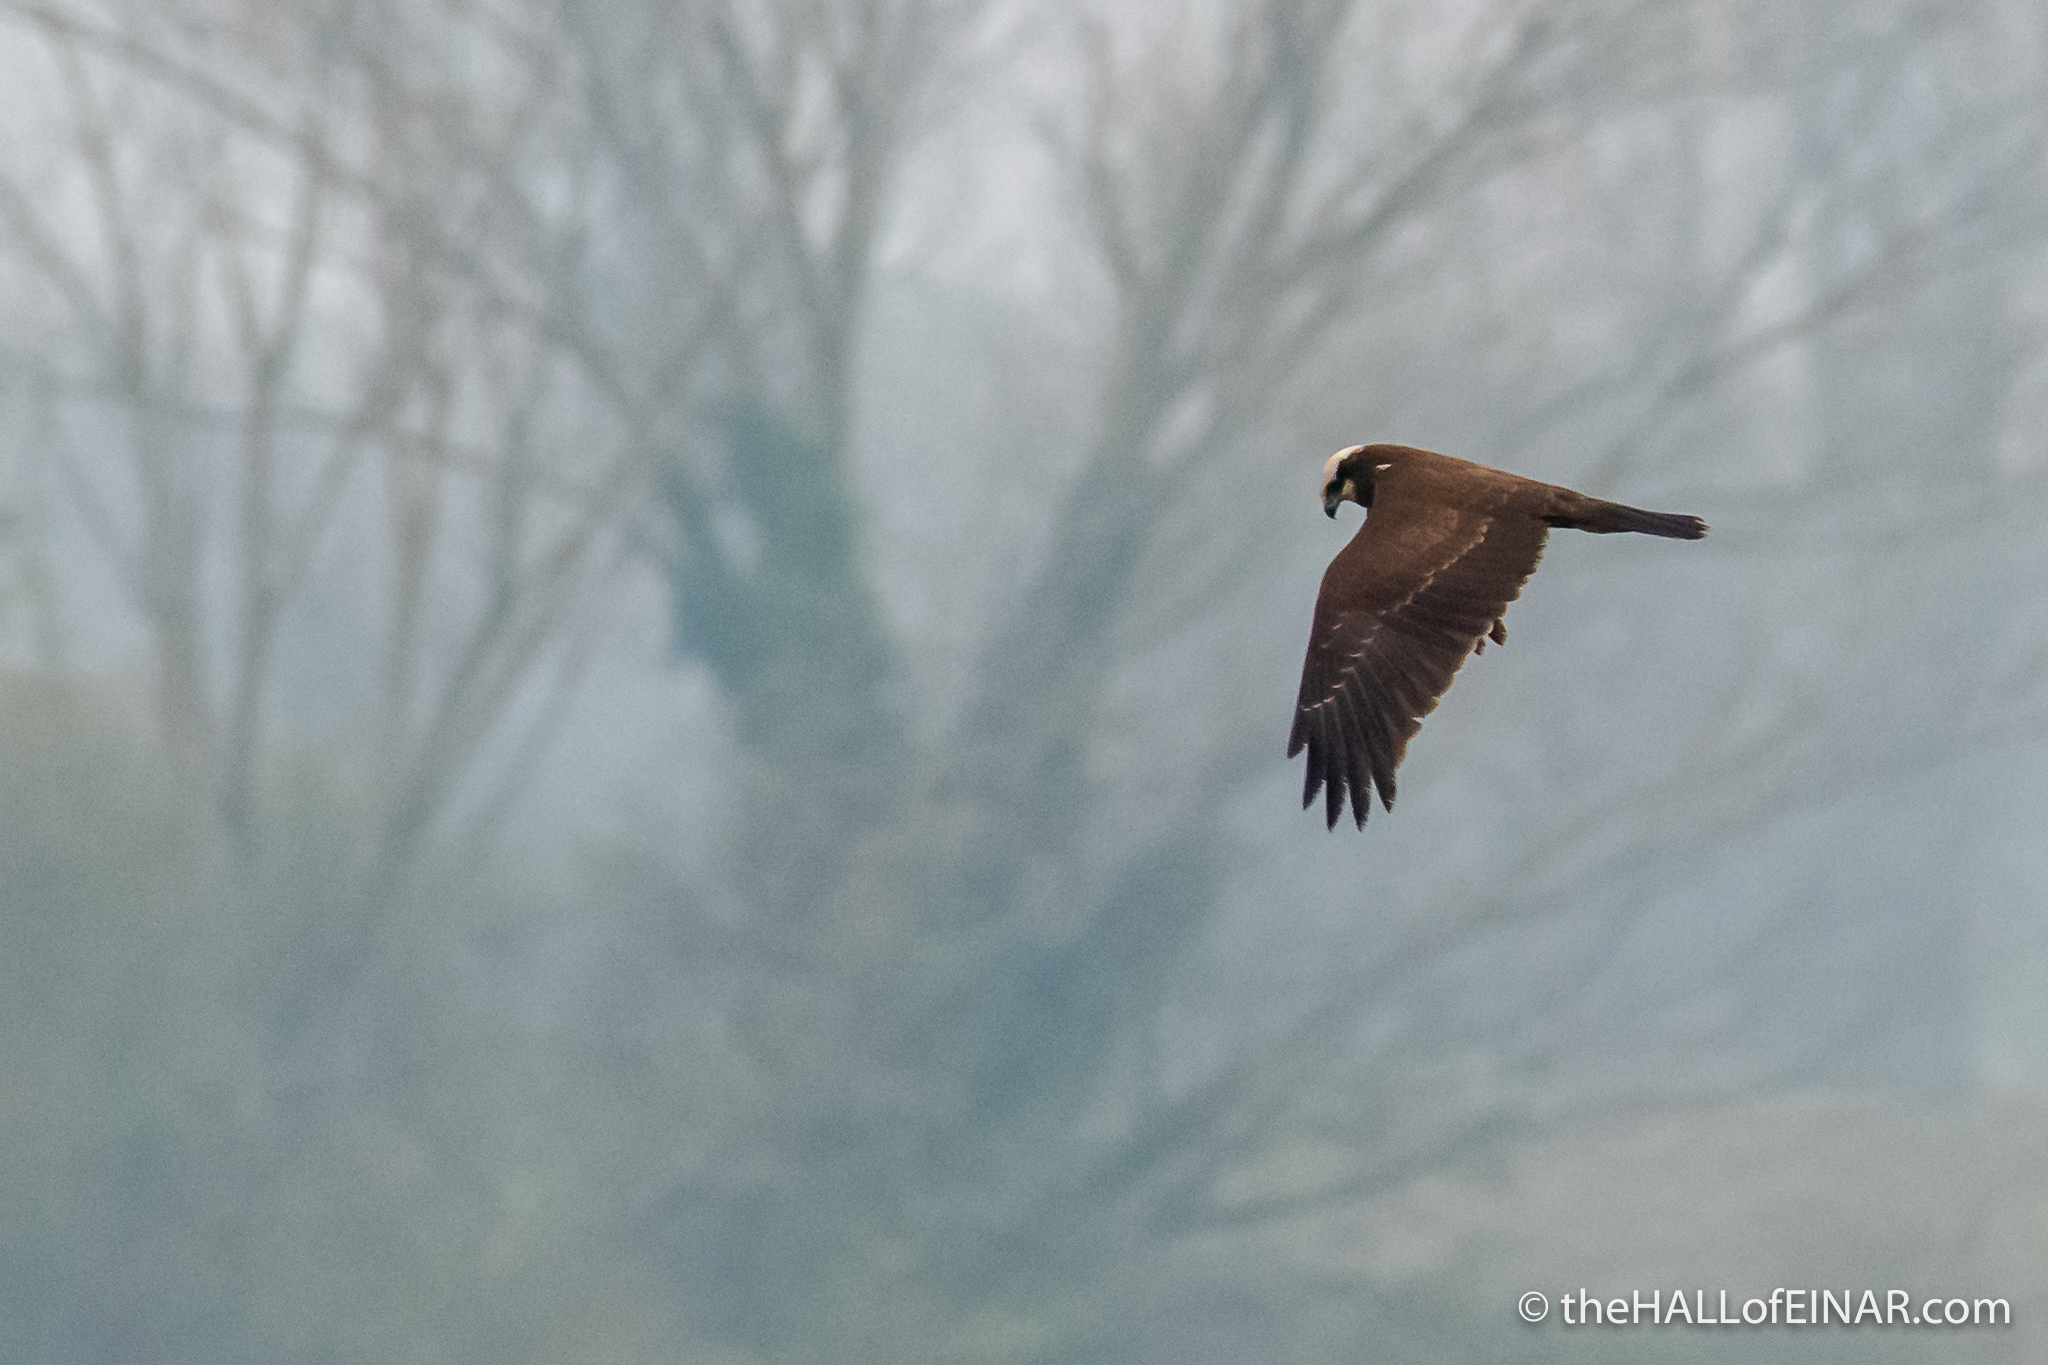 Marsh Harrier in Alviano - The Hall of Einar - photograph (c) David Bailey (not the)